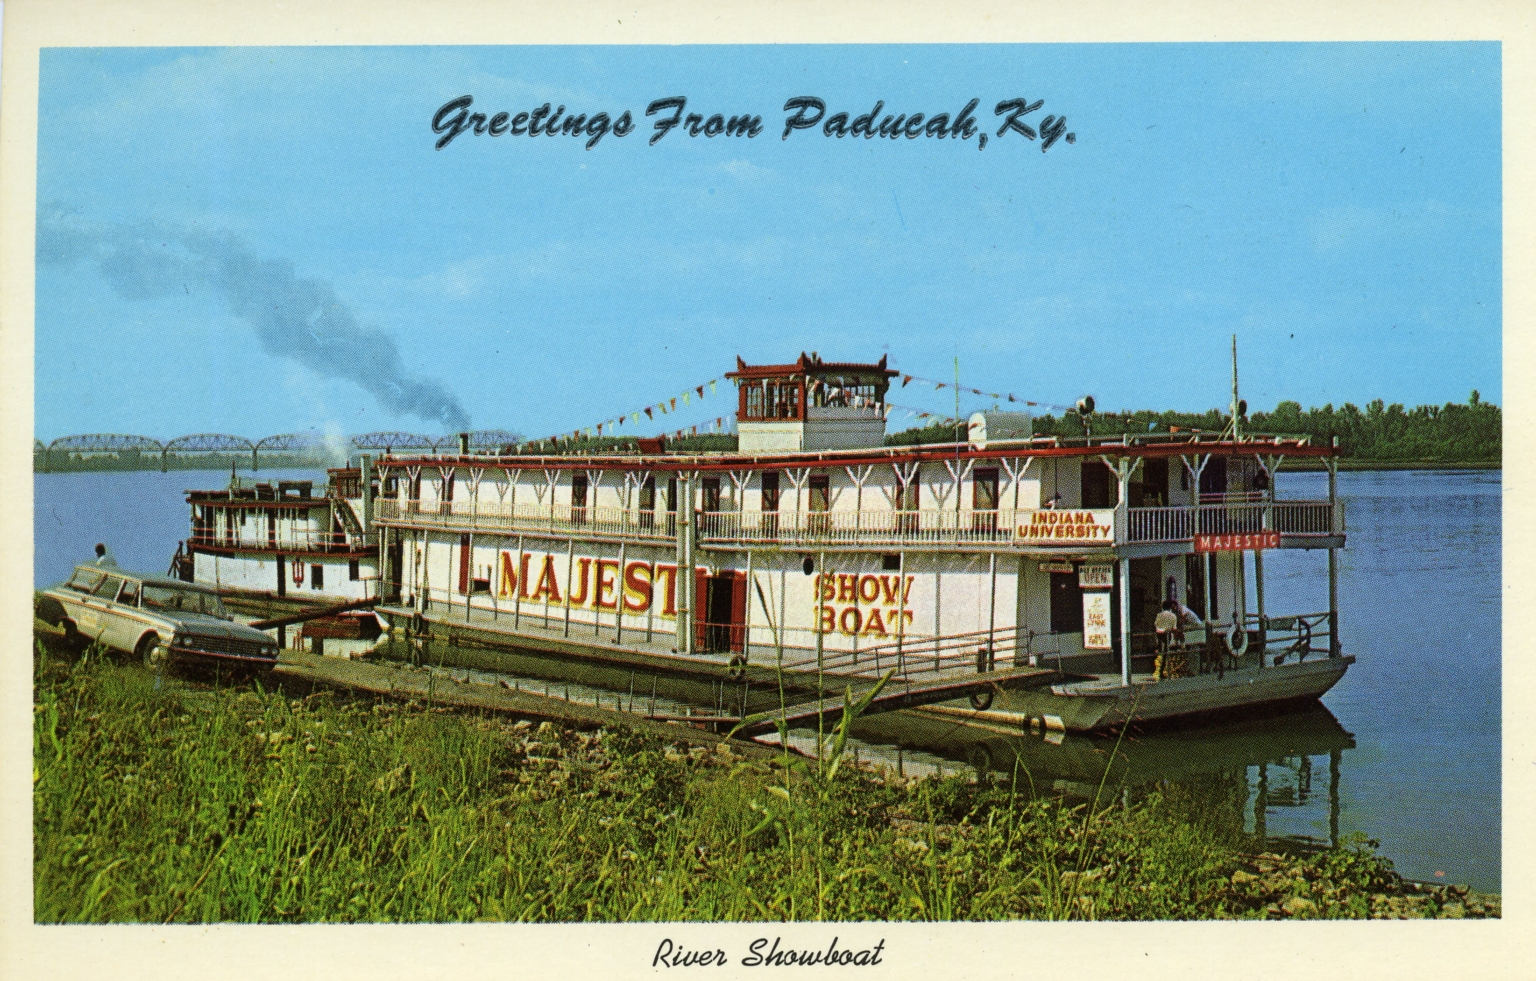 Majestic showboat of Indiana University on Ohio River at Paducah (KY)